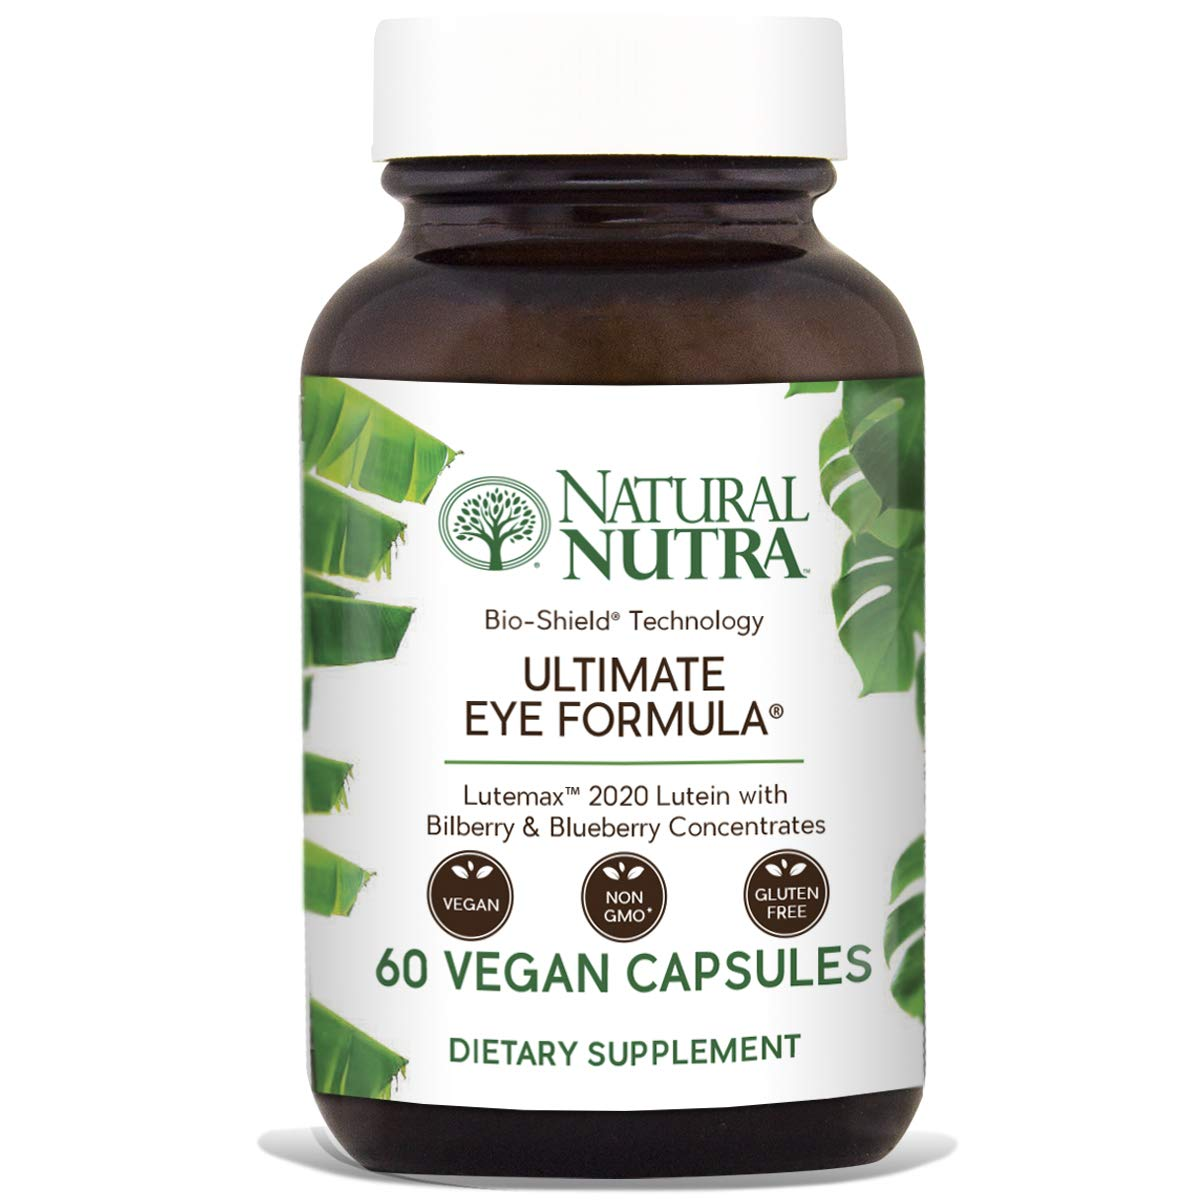 Natural Nutra Ultimate Eye Formula with Lutein, Blueberry and Bilberry Extract, Macular Degeneration and Night Vision Supplement, 60 Capsules by Natural Nutra